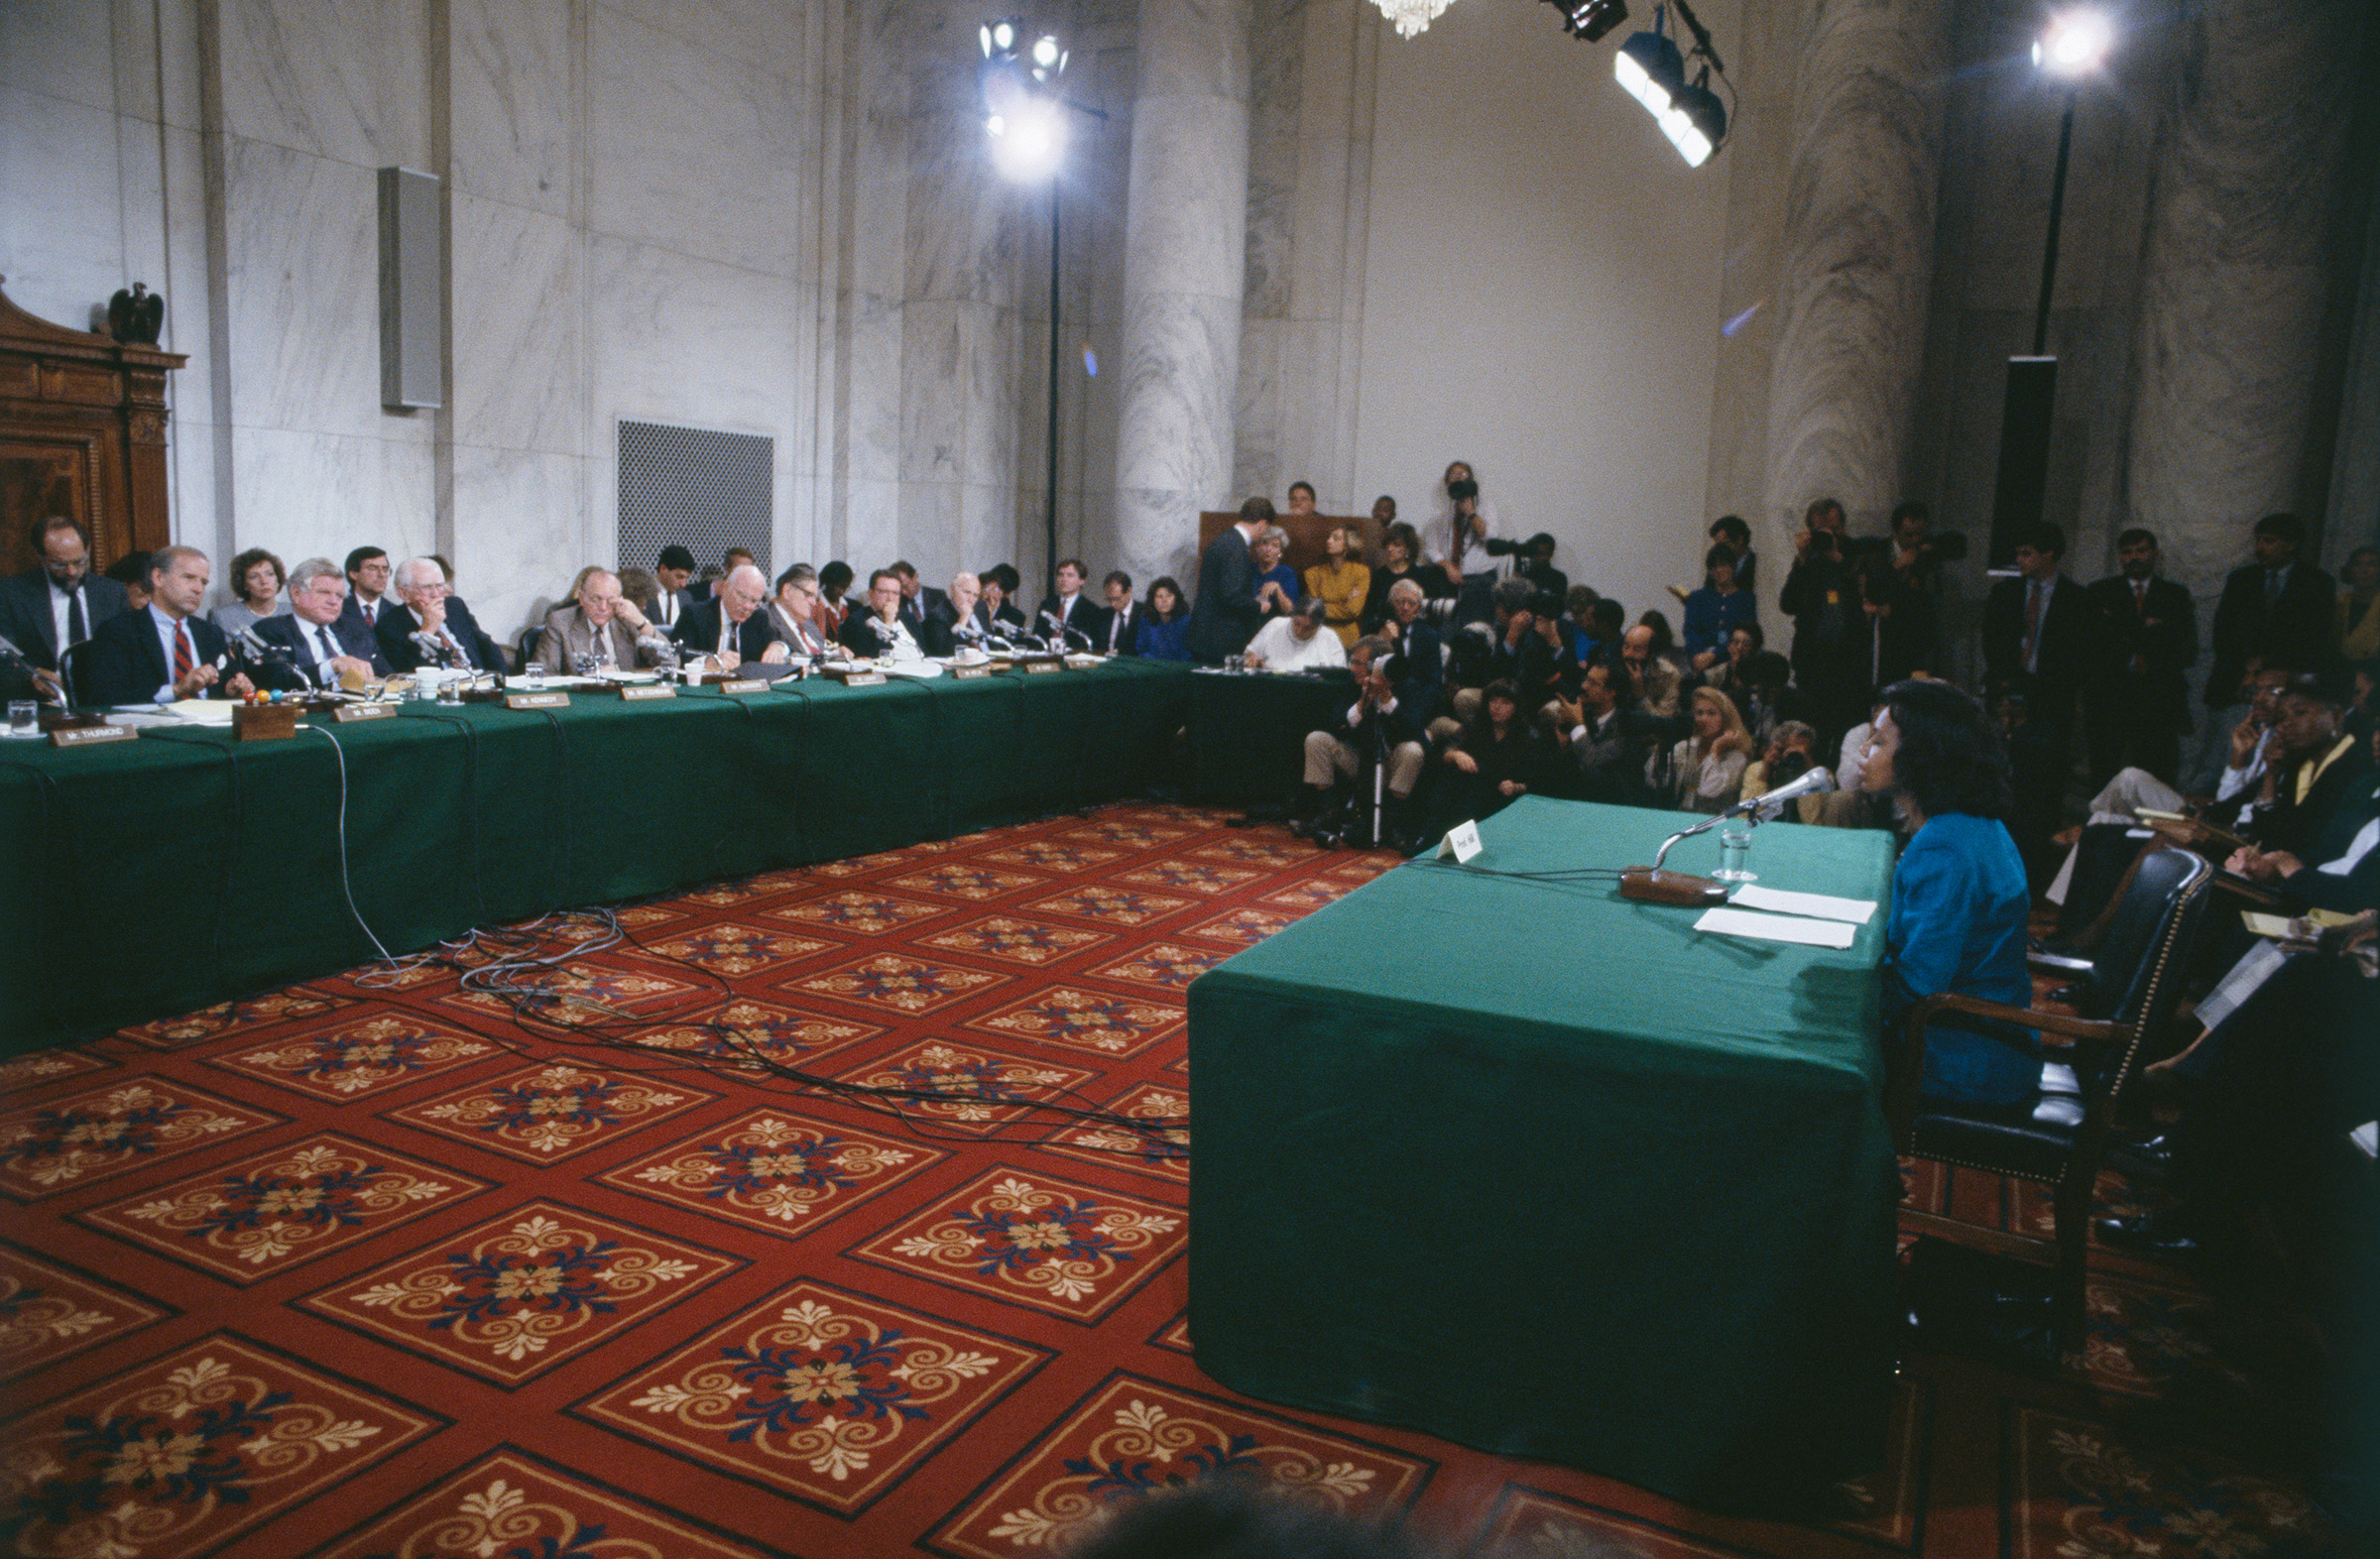 Anita Hill testifies before the Senate Judiciary Committee, chaired by Joe Biden, on the nomination of Clarence Thomas to the Supreme Court on Capitol Hill in Washington, D.C., on Oct. 11, 1991.